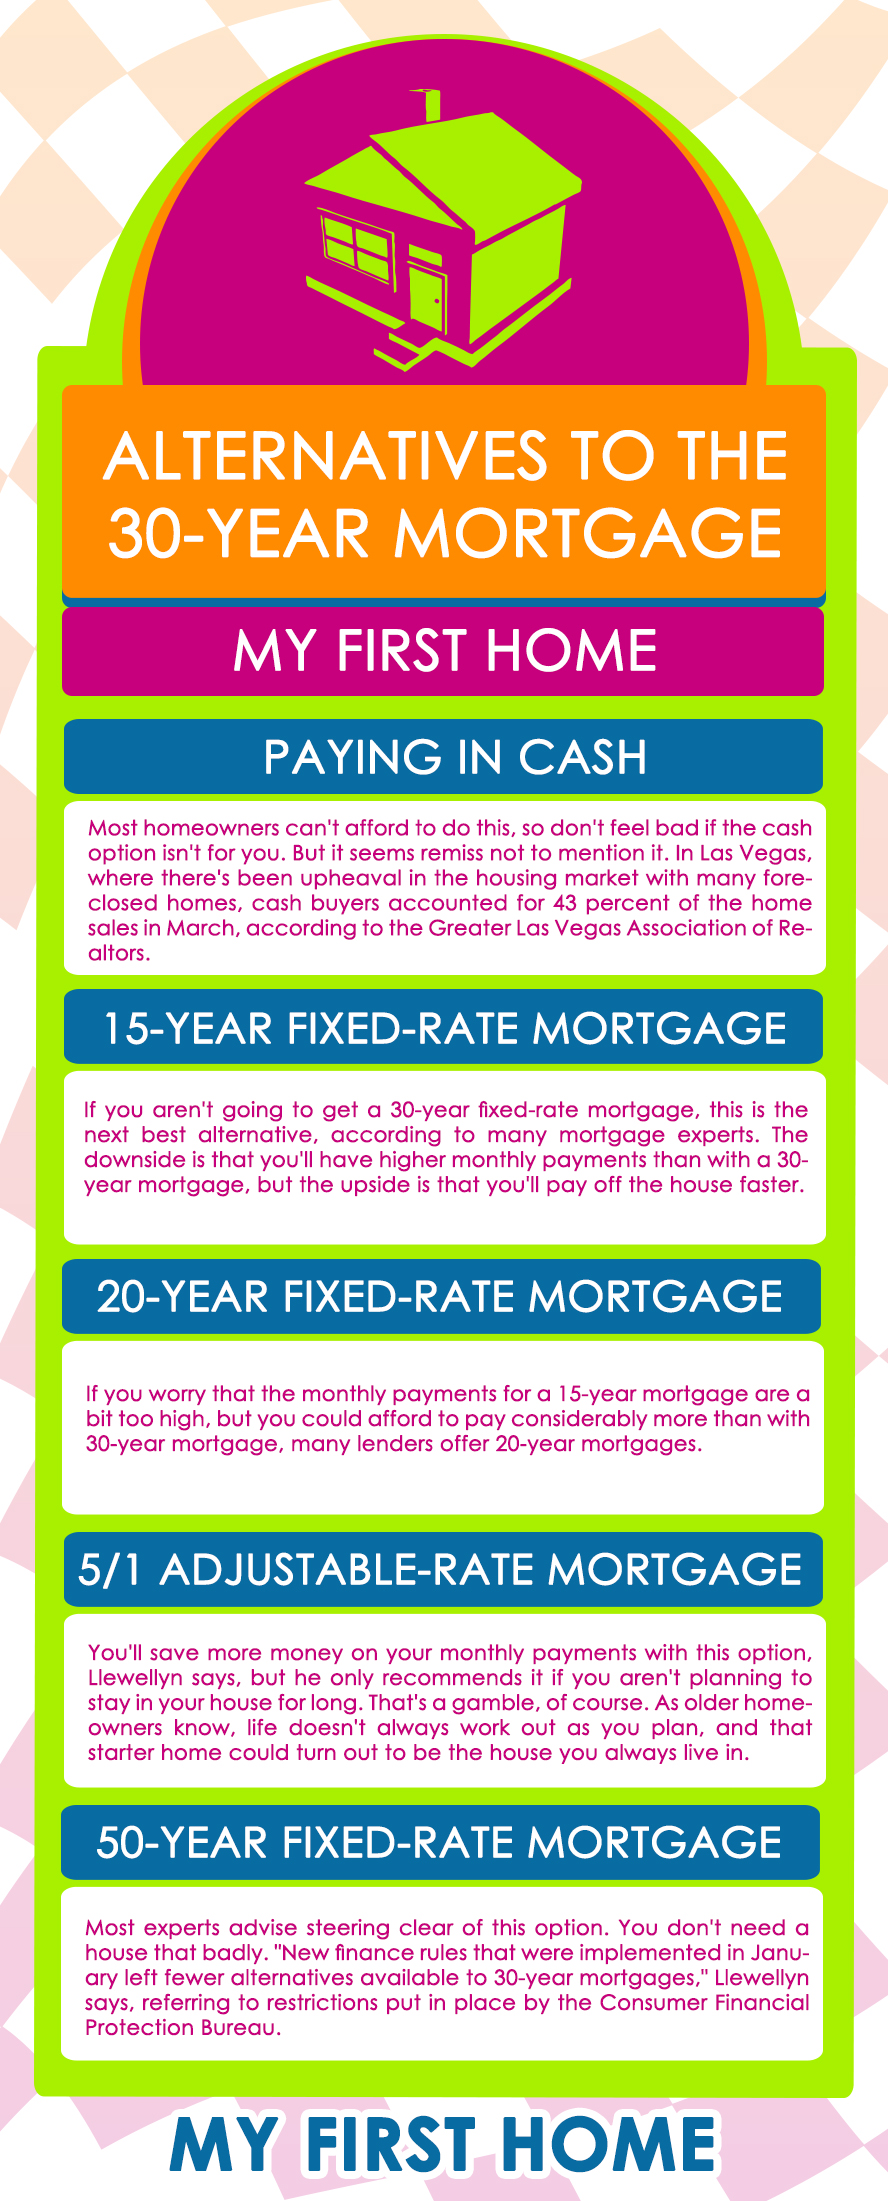 5 alternatives to the 30-year mortgage